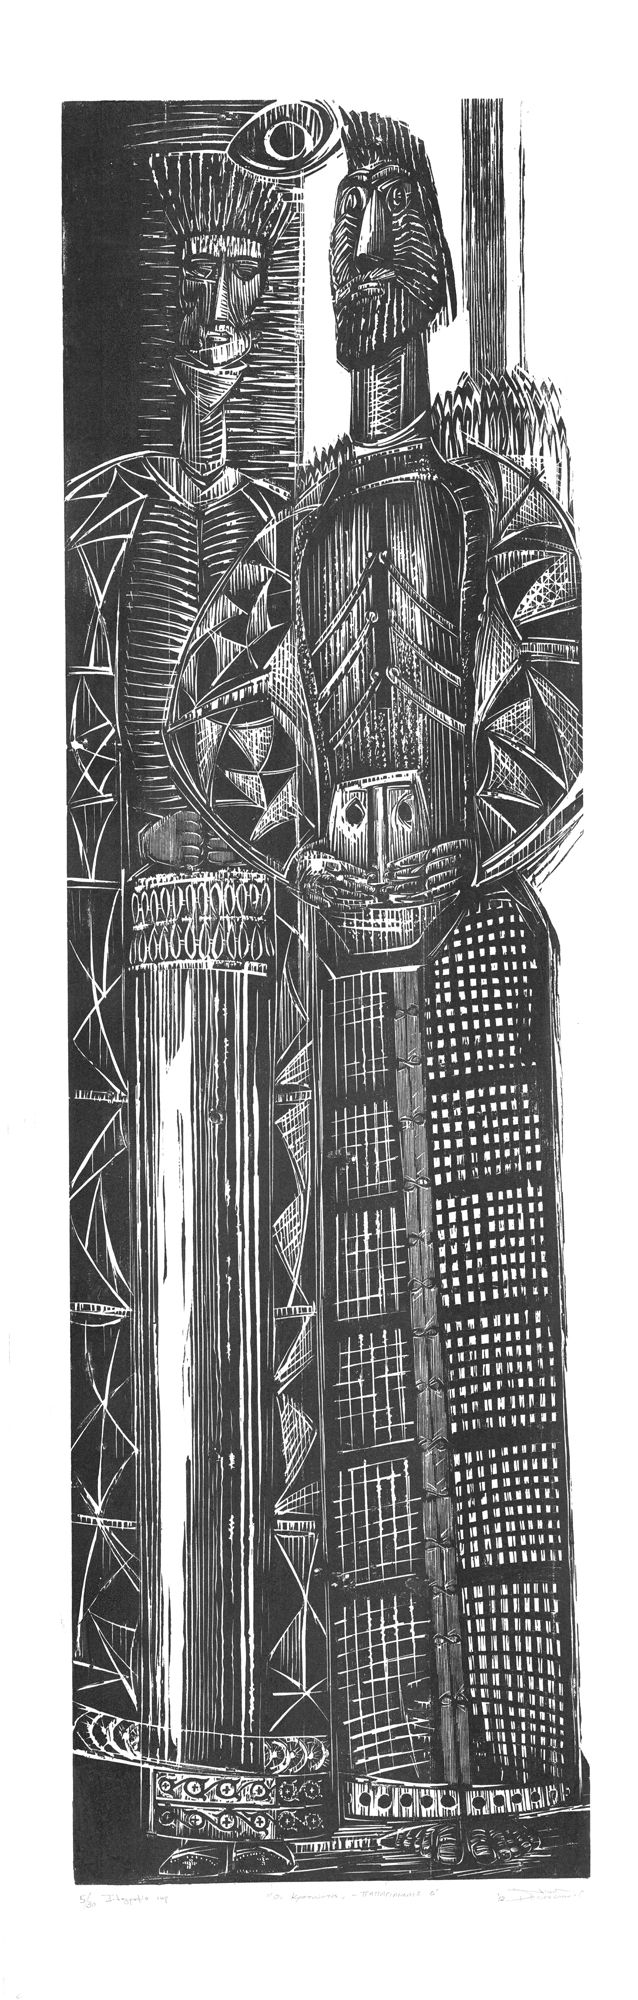 "The Rulers (Οι  Κρατούντες). Woodcut. Nikos Desekopoulos. From the 2014 exhibition ""When engraving meets sculpture""."